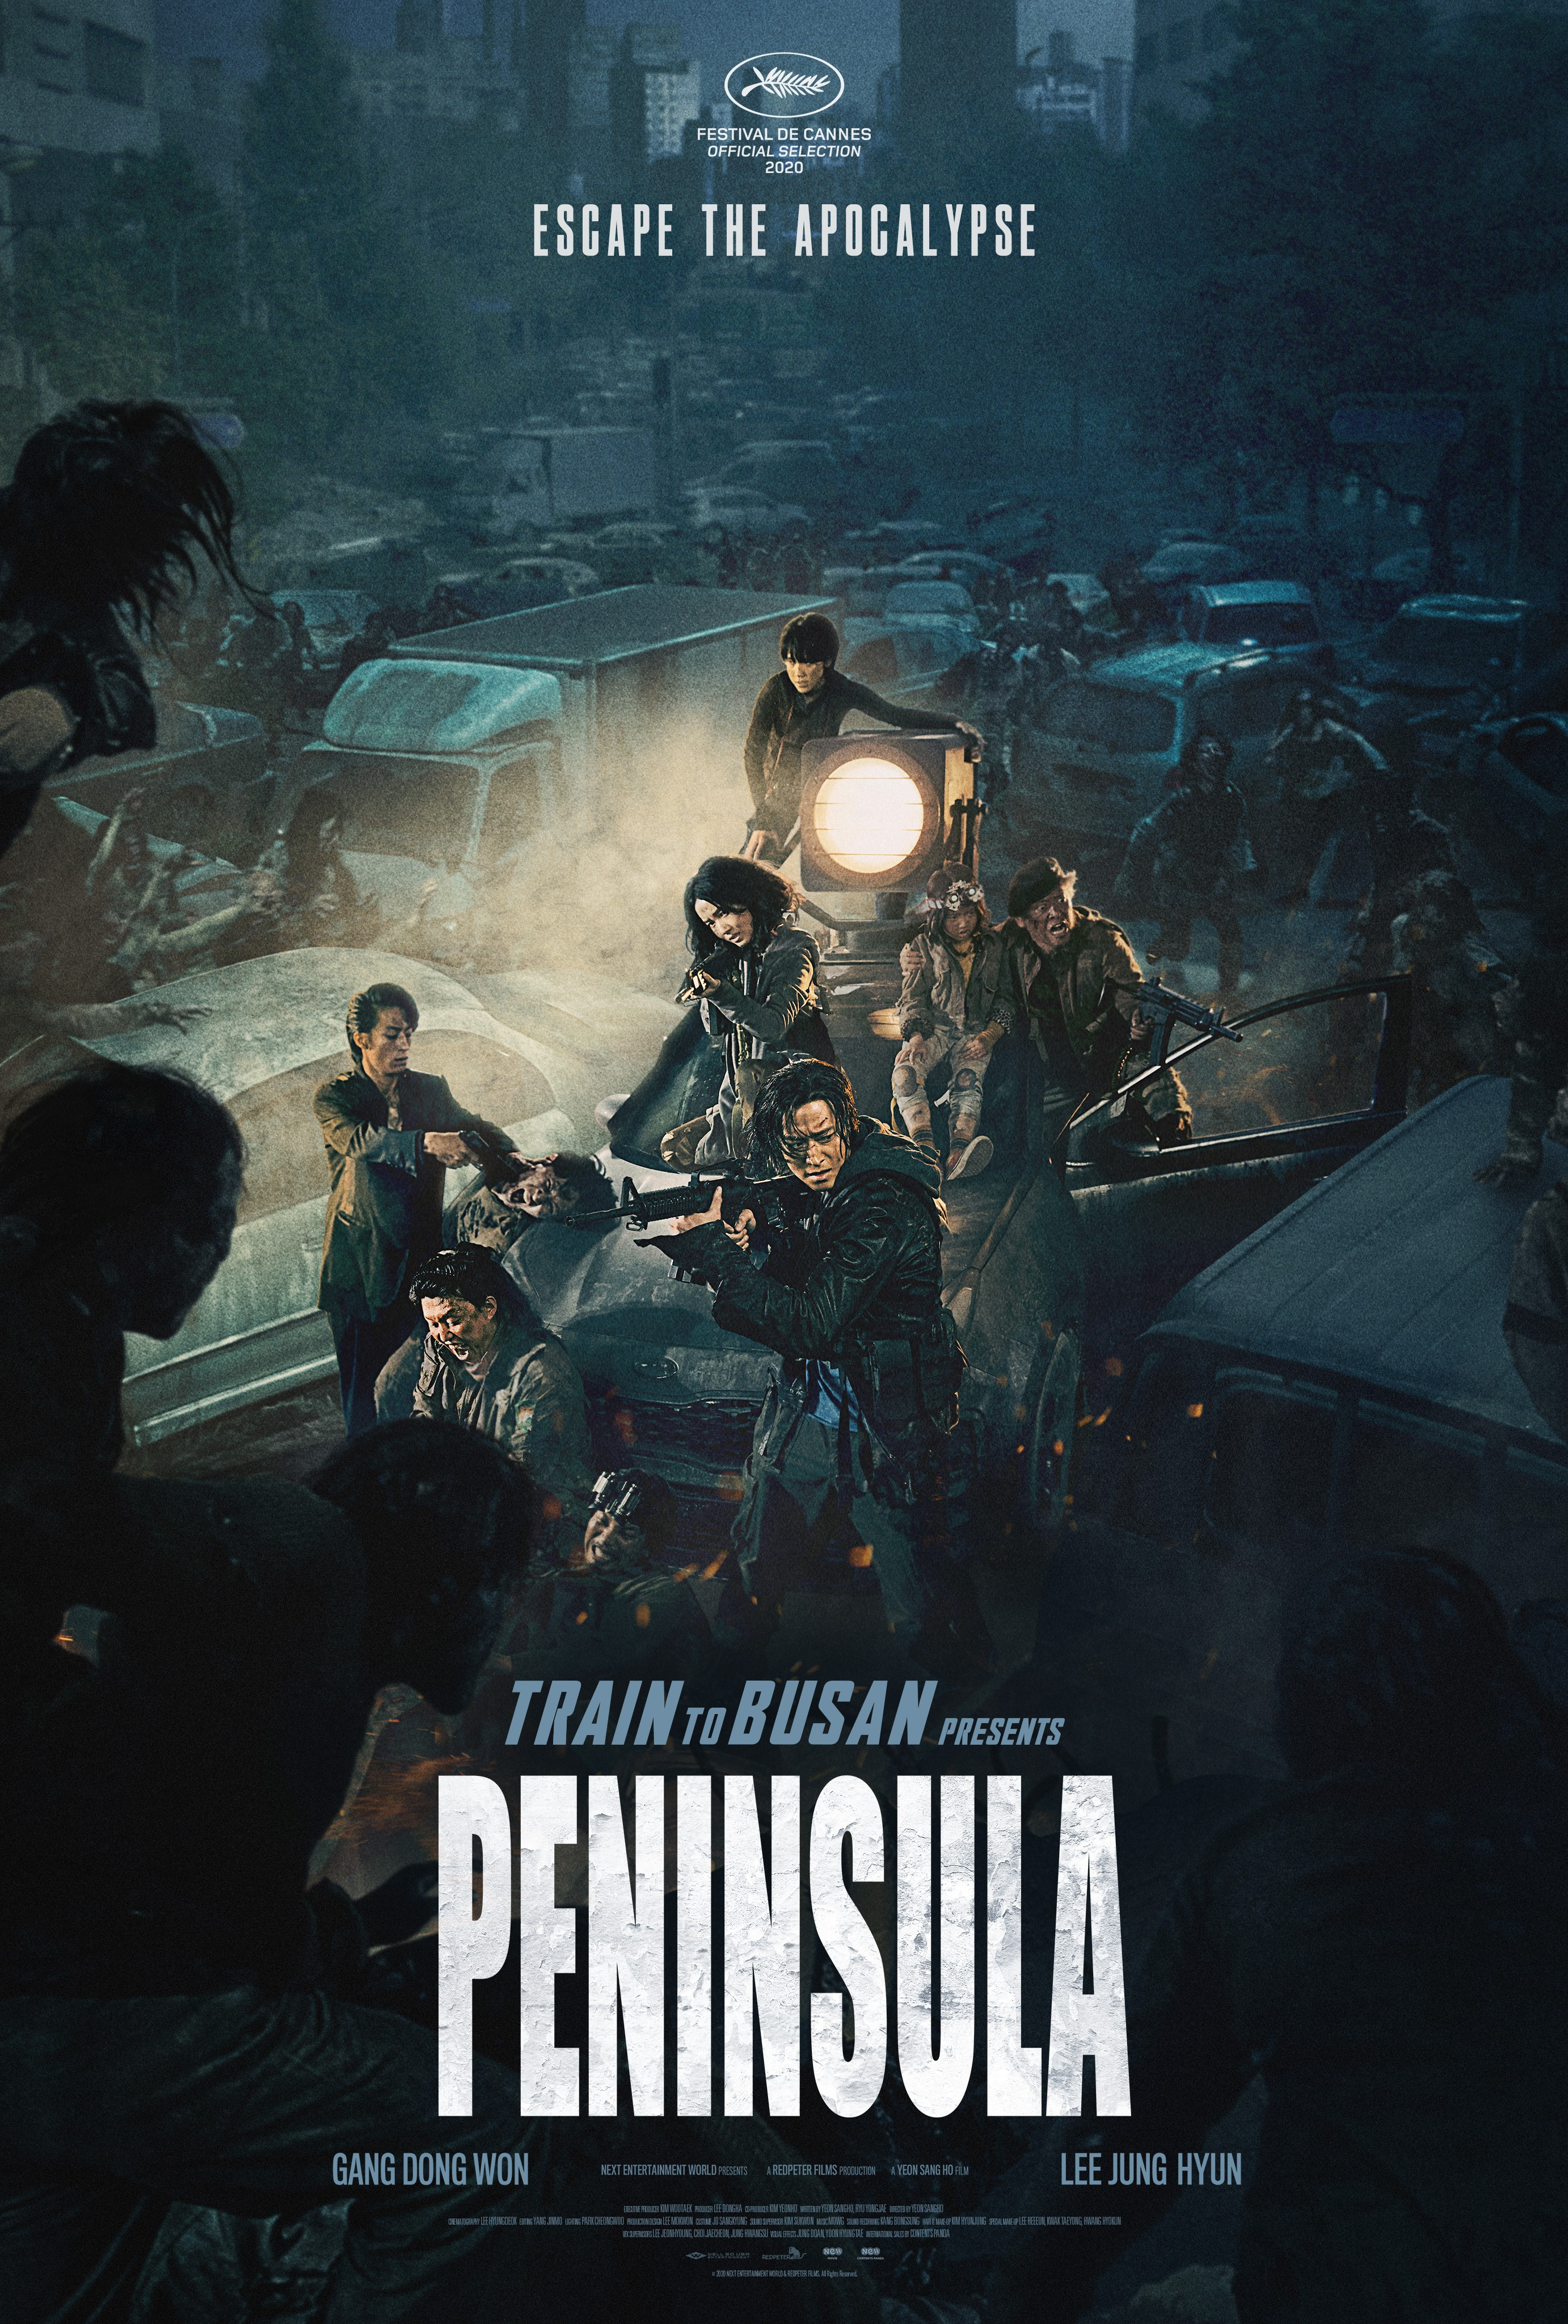 Train To Busan Presents Peninsula 2020 Rotten Tomatoes